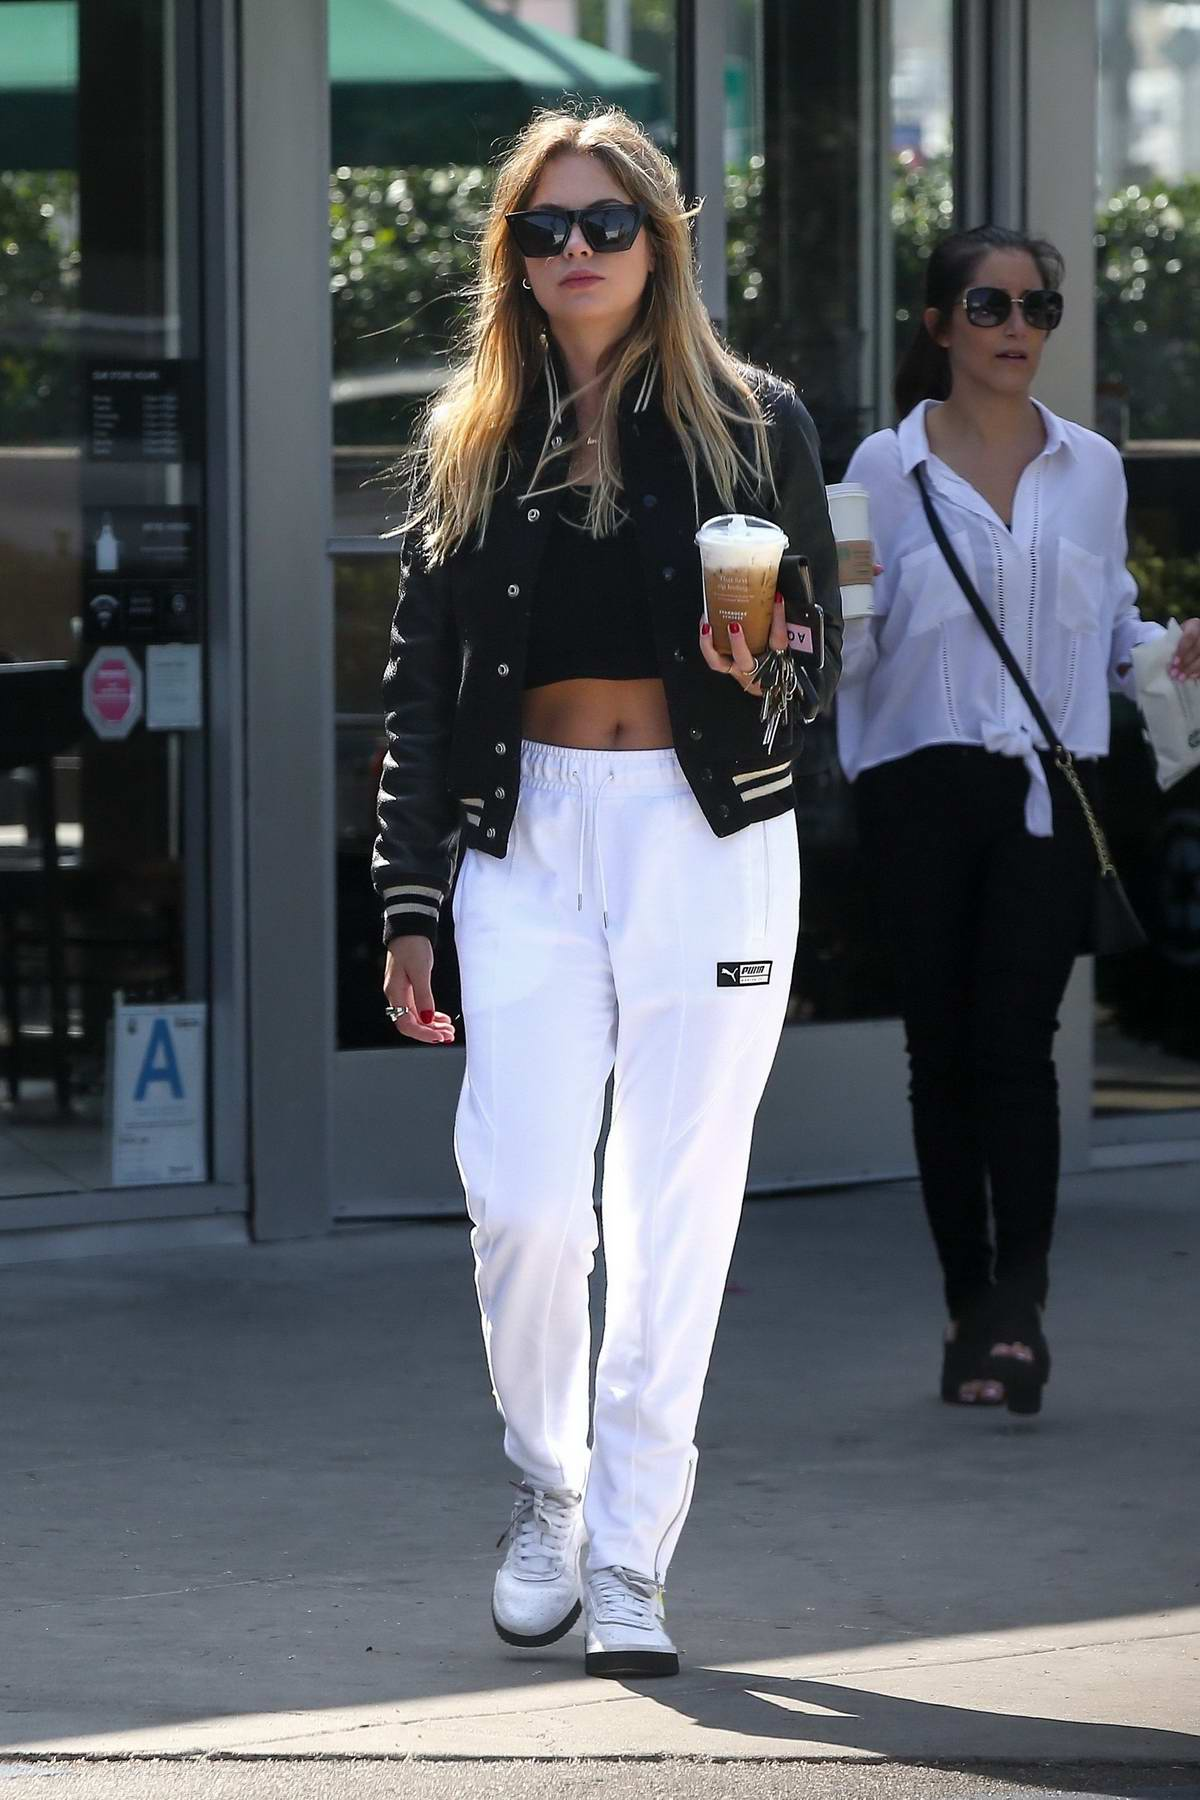 Ashley Benson grabs her daily Starbucks coffee while out in West Hollywood, Los Angeles